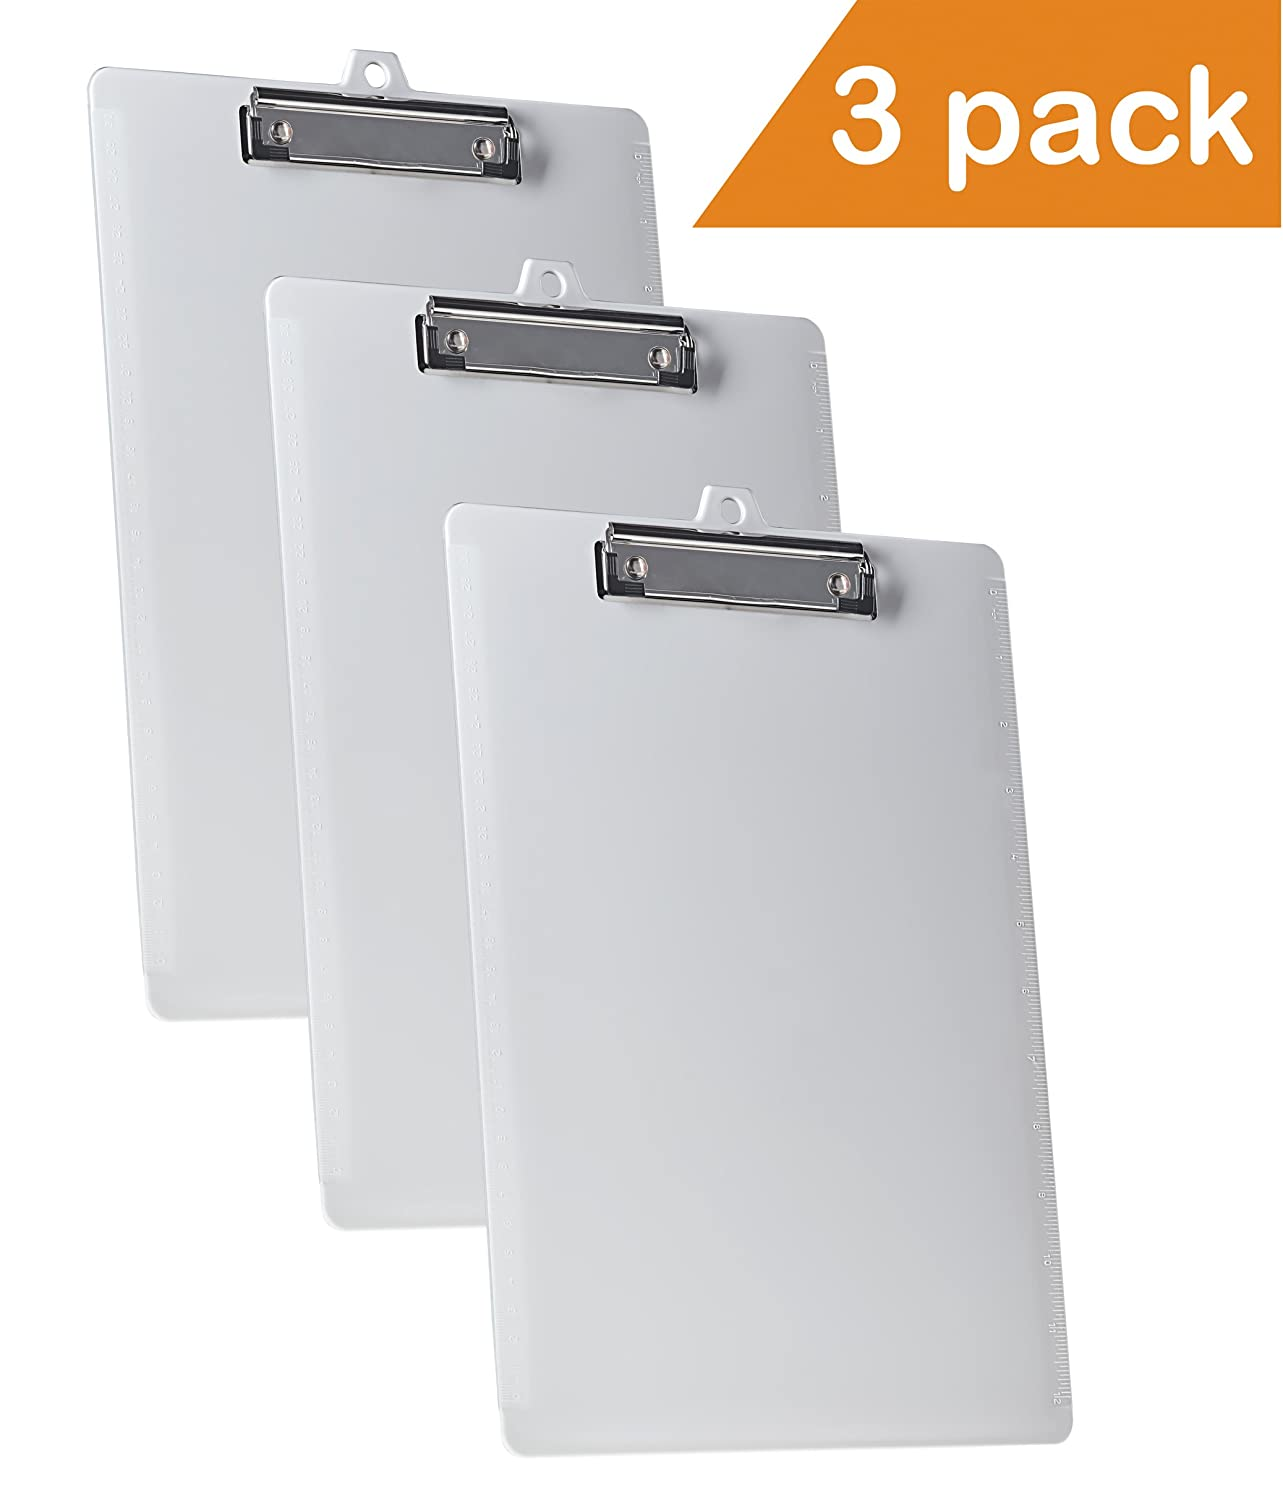 Acrimet Clipboard Letter Size A4 Low Profile Clip (White Color) (3 Pack) 1341.6